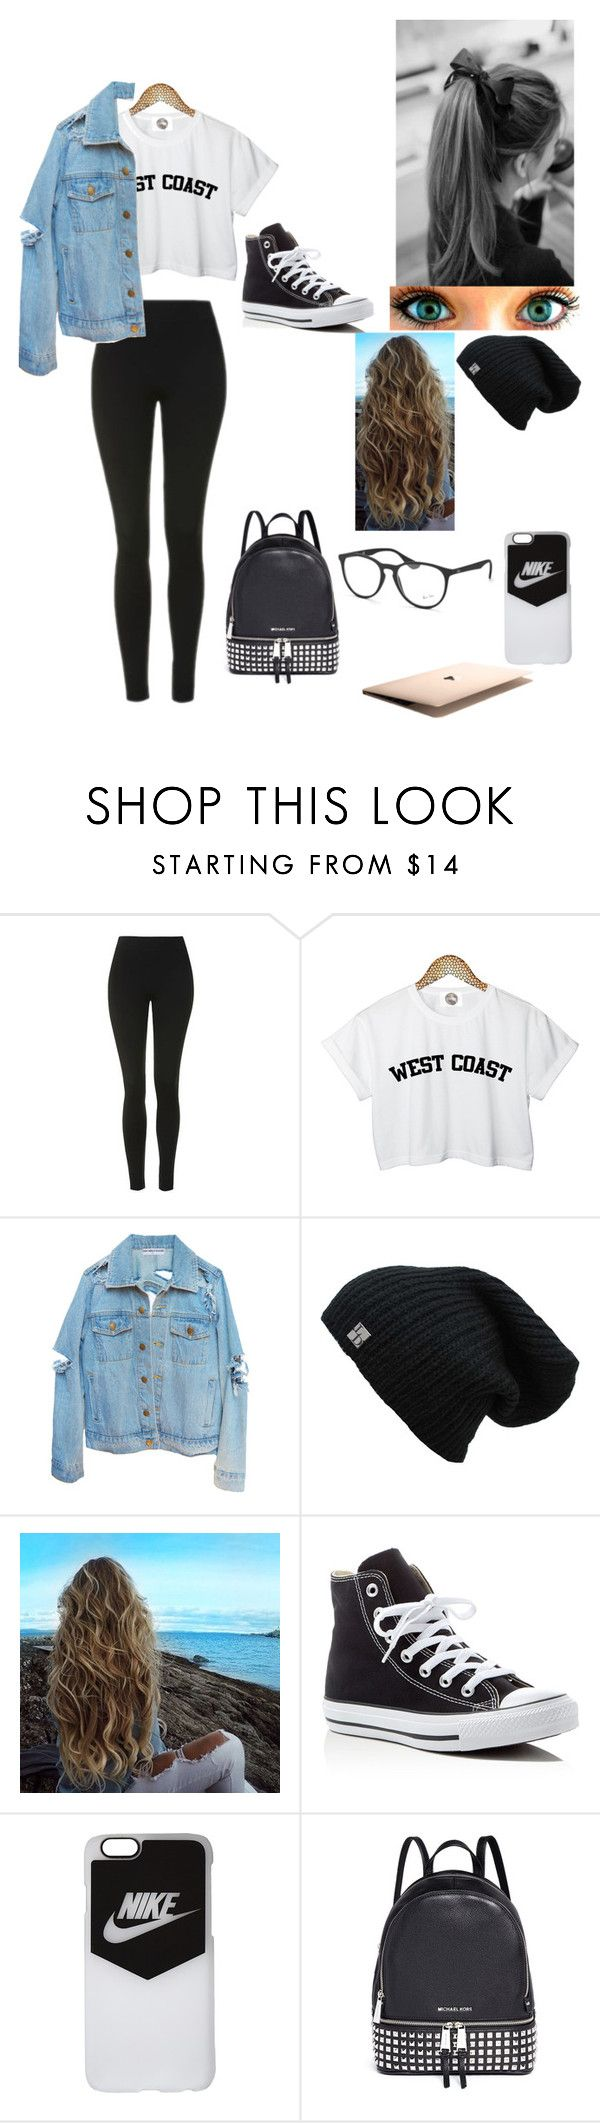 """""""School day"""" by h-a-r-l-i-e ❤ liked on Polyvore featuring Topshop, Cyrus, Converse, NIKE, Michael Kors and Ray-Ban"""